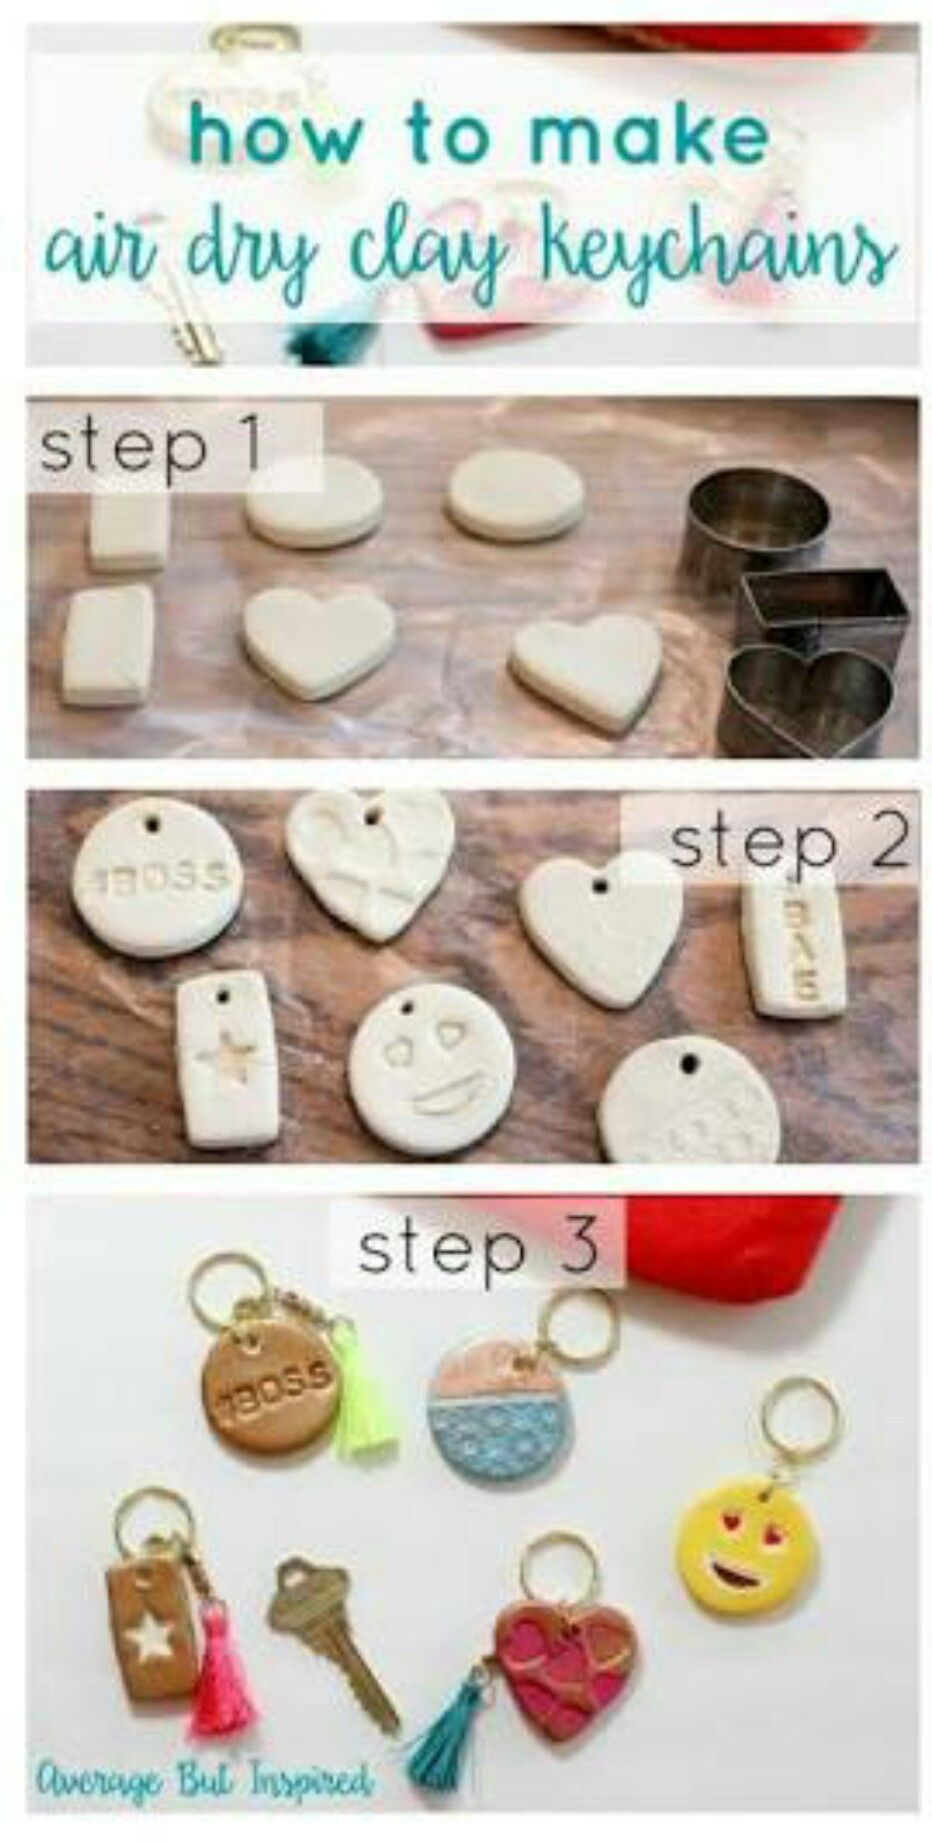 These take a little bit of effort but are really cute key chains…